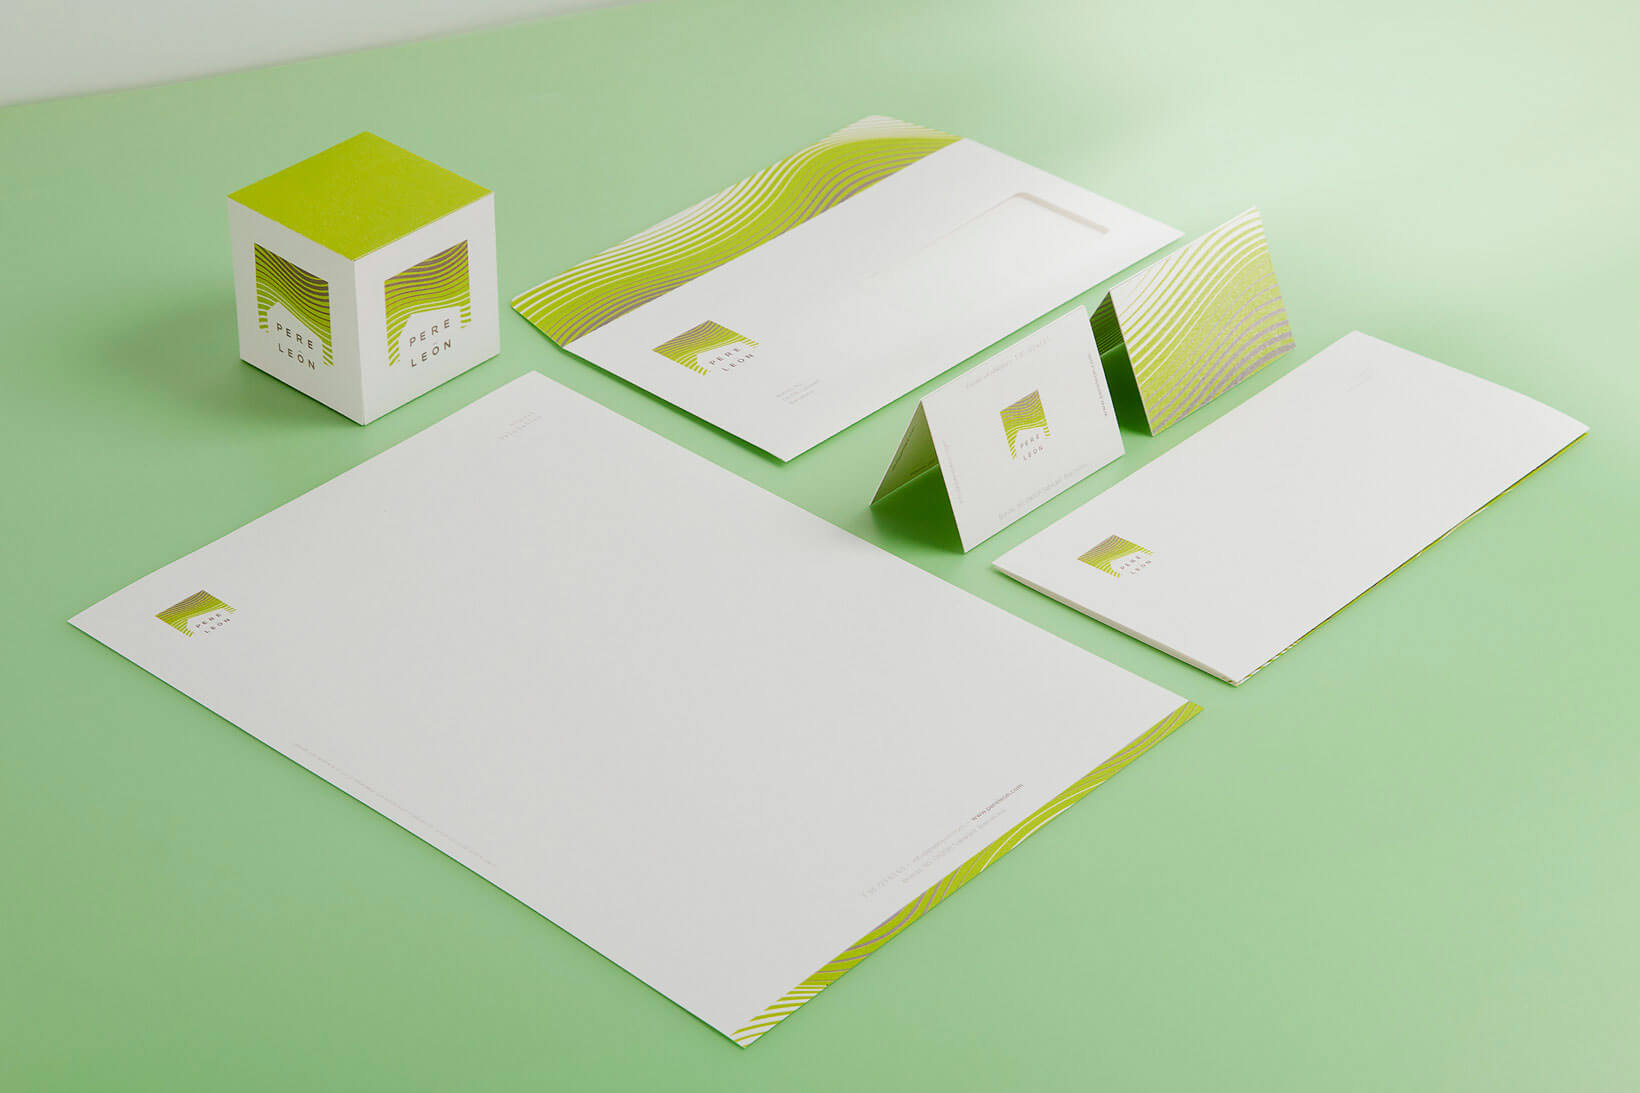 Pere León bio-architecture branding logo design visual corporate identity brochure Vibranding